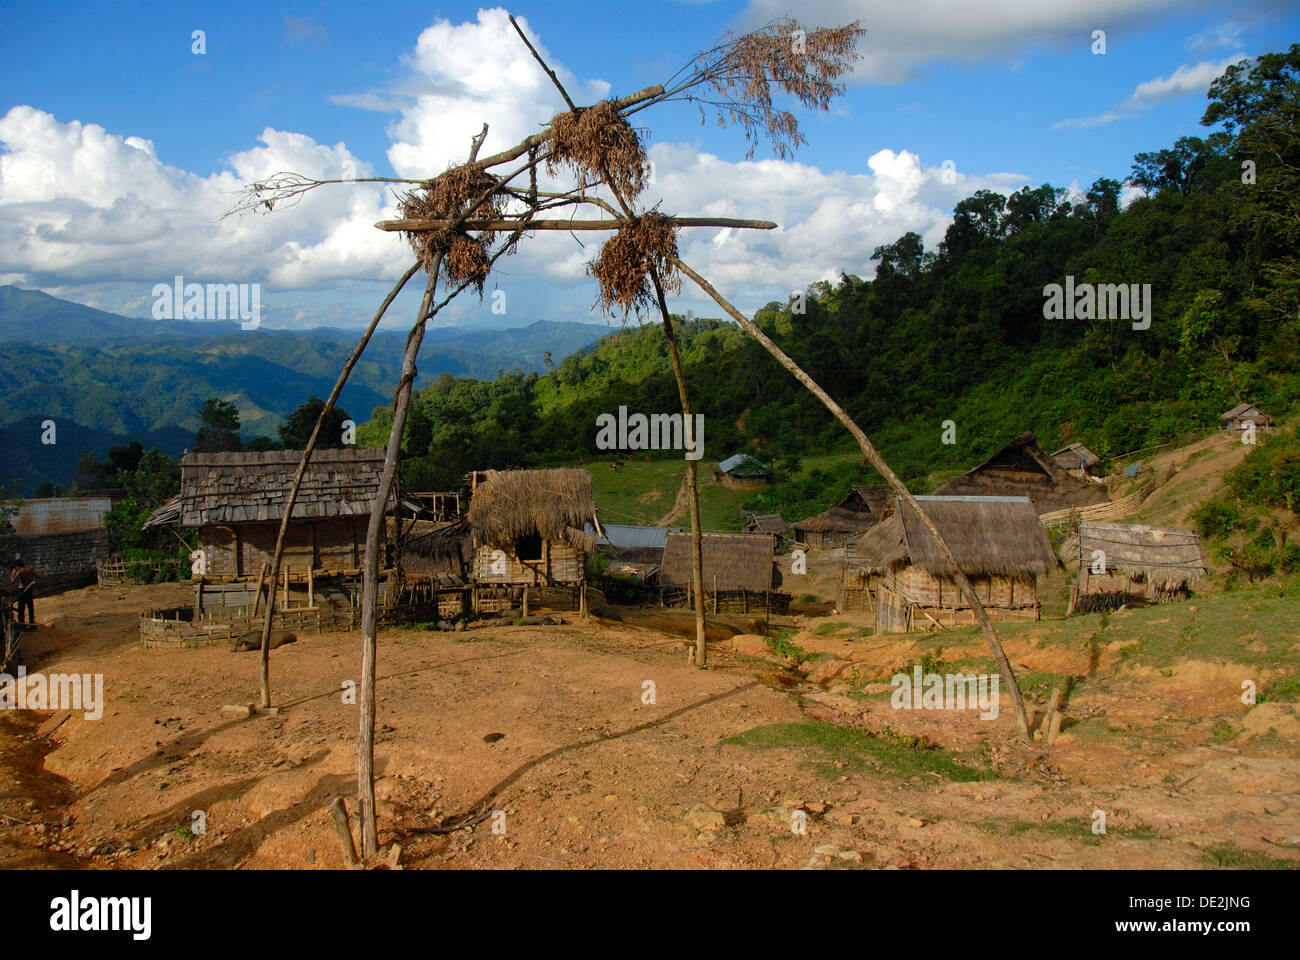 Poverty, natural religion, animism, belief in spirits, belief in ghosts, spirits swing at the village entrance, - Stock Image